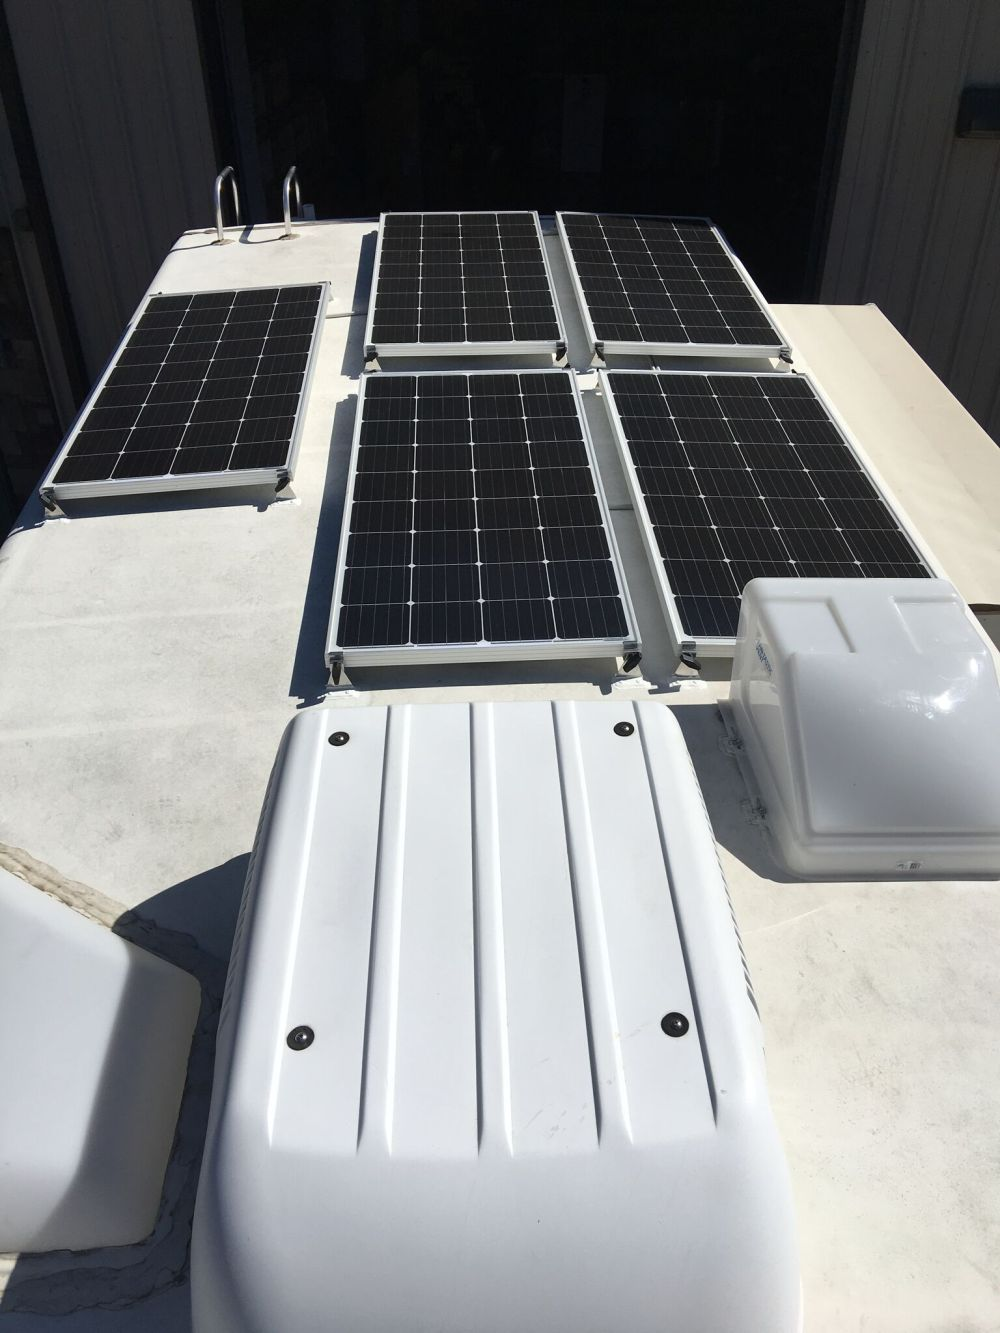 medium resolution of equipment added 5x sf180 solar panel kits 1x roof combiner box 1x victron bluesolar smart